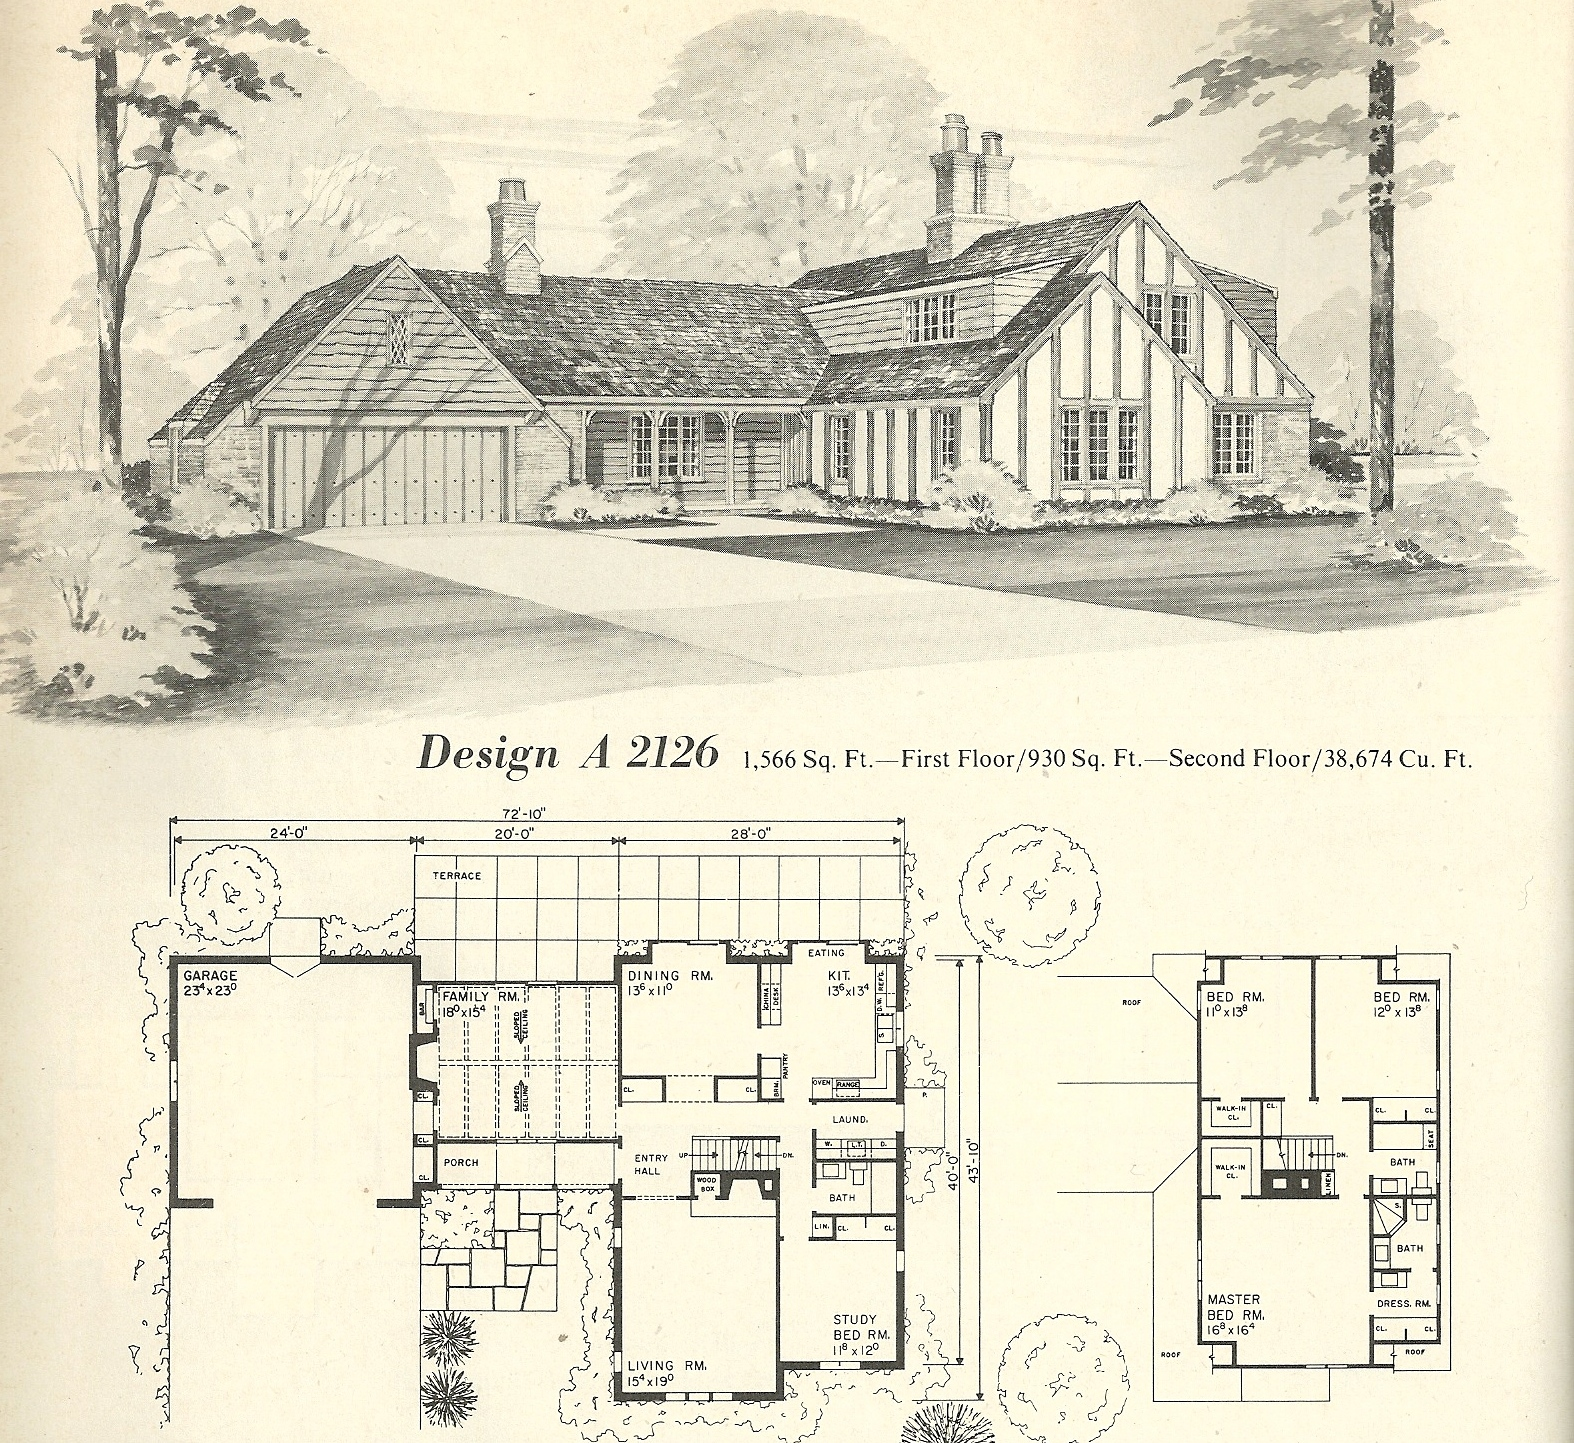 Vintage house plans 2126 antique alter ego for 1970s house floor plans